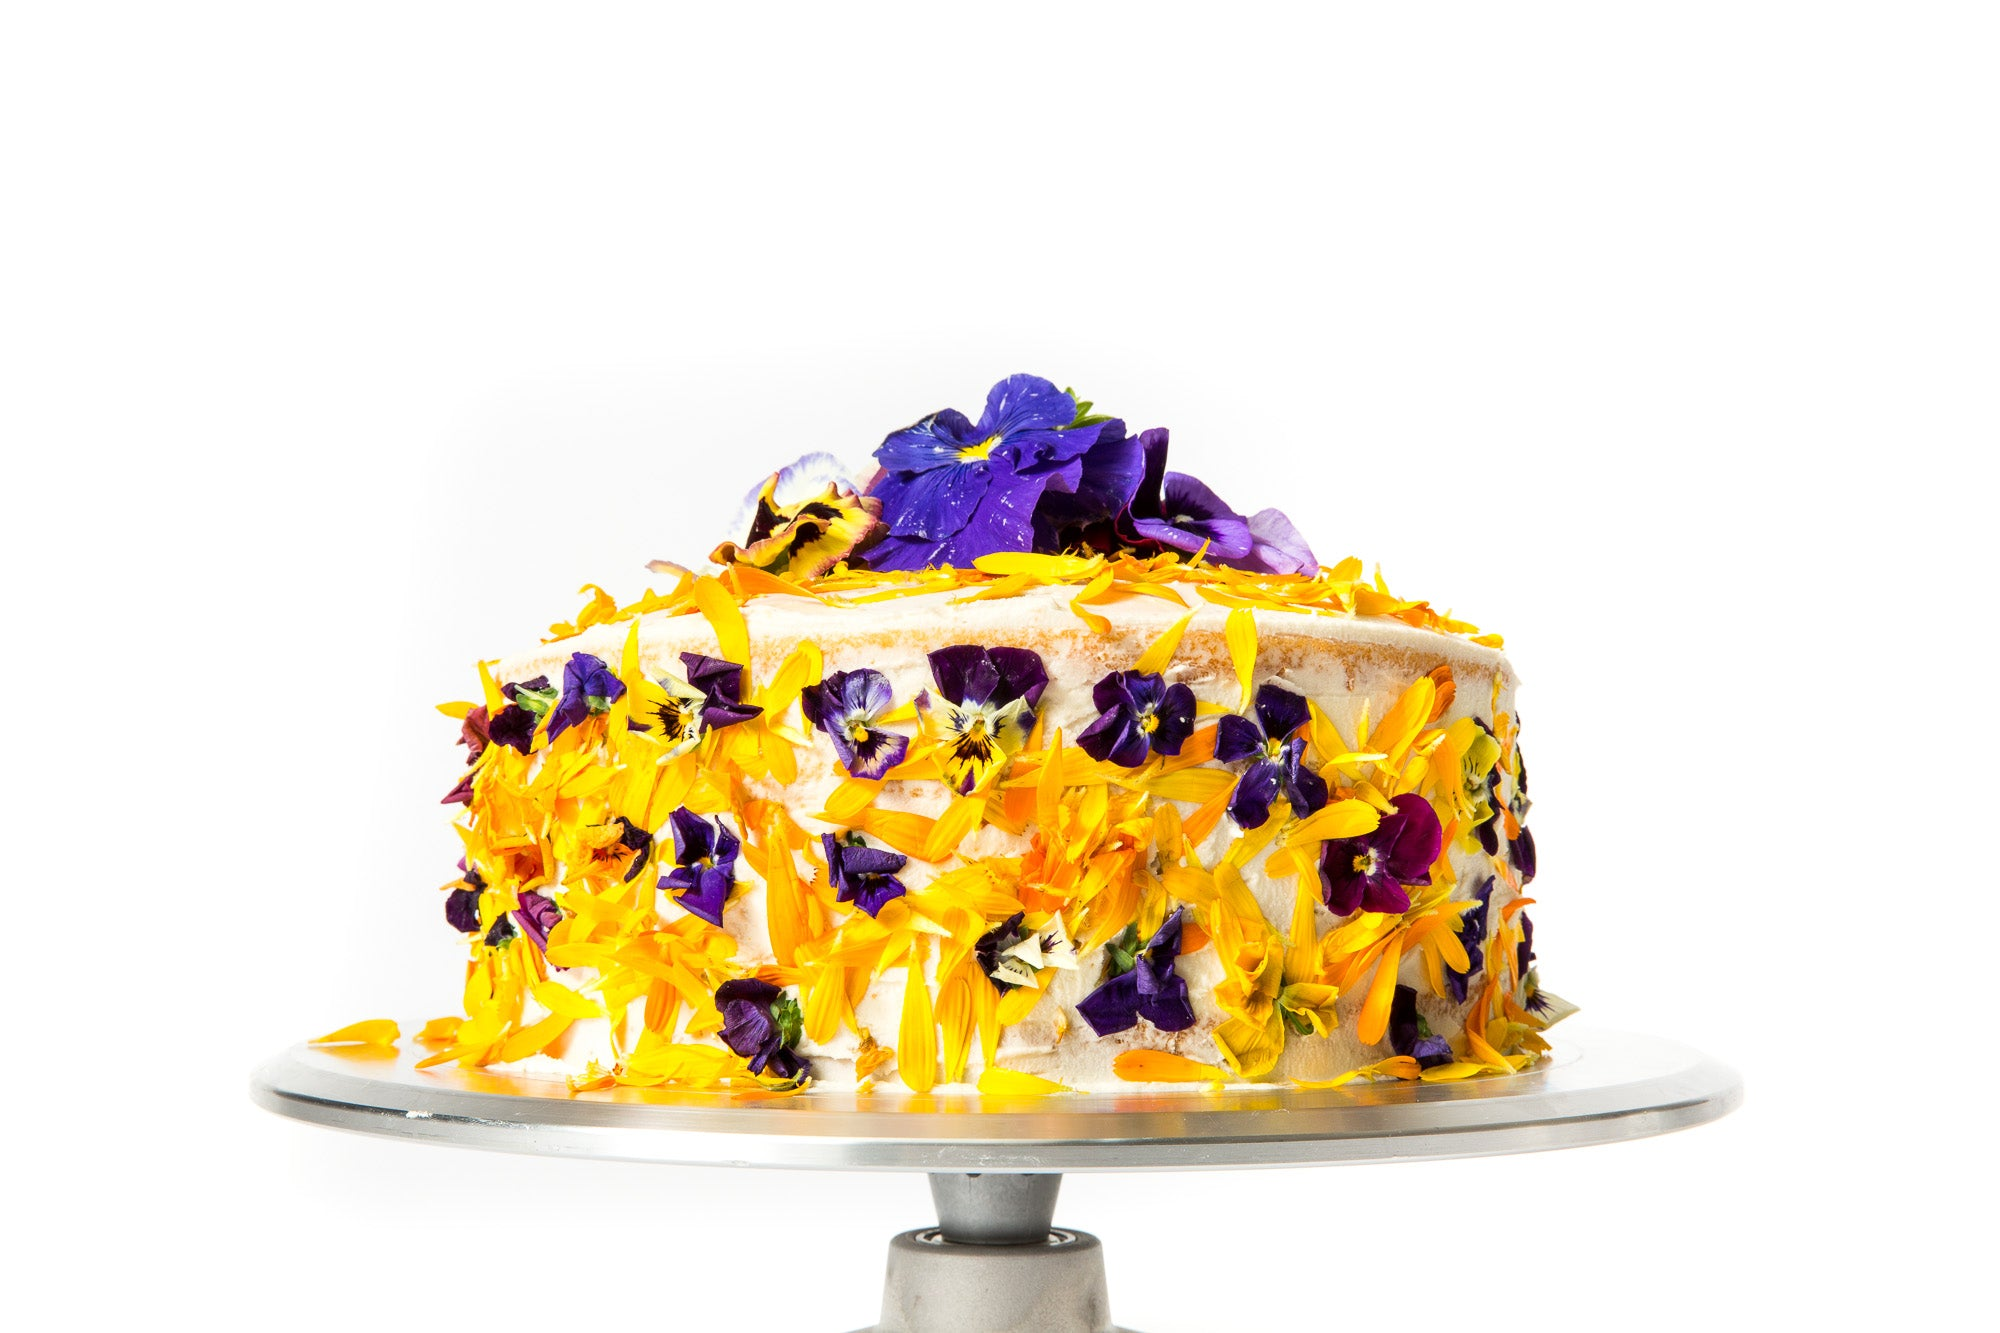 Image of the side of Miss Jones Baking Co Floral Bloom Layer Cake on a cake stand